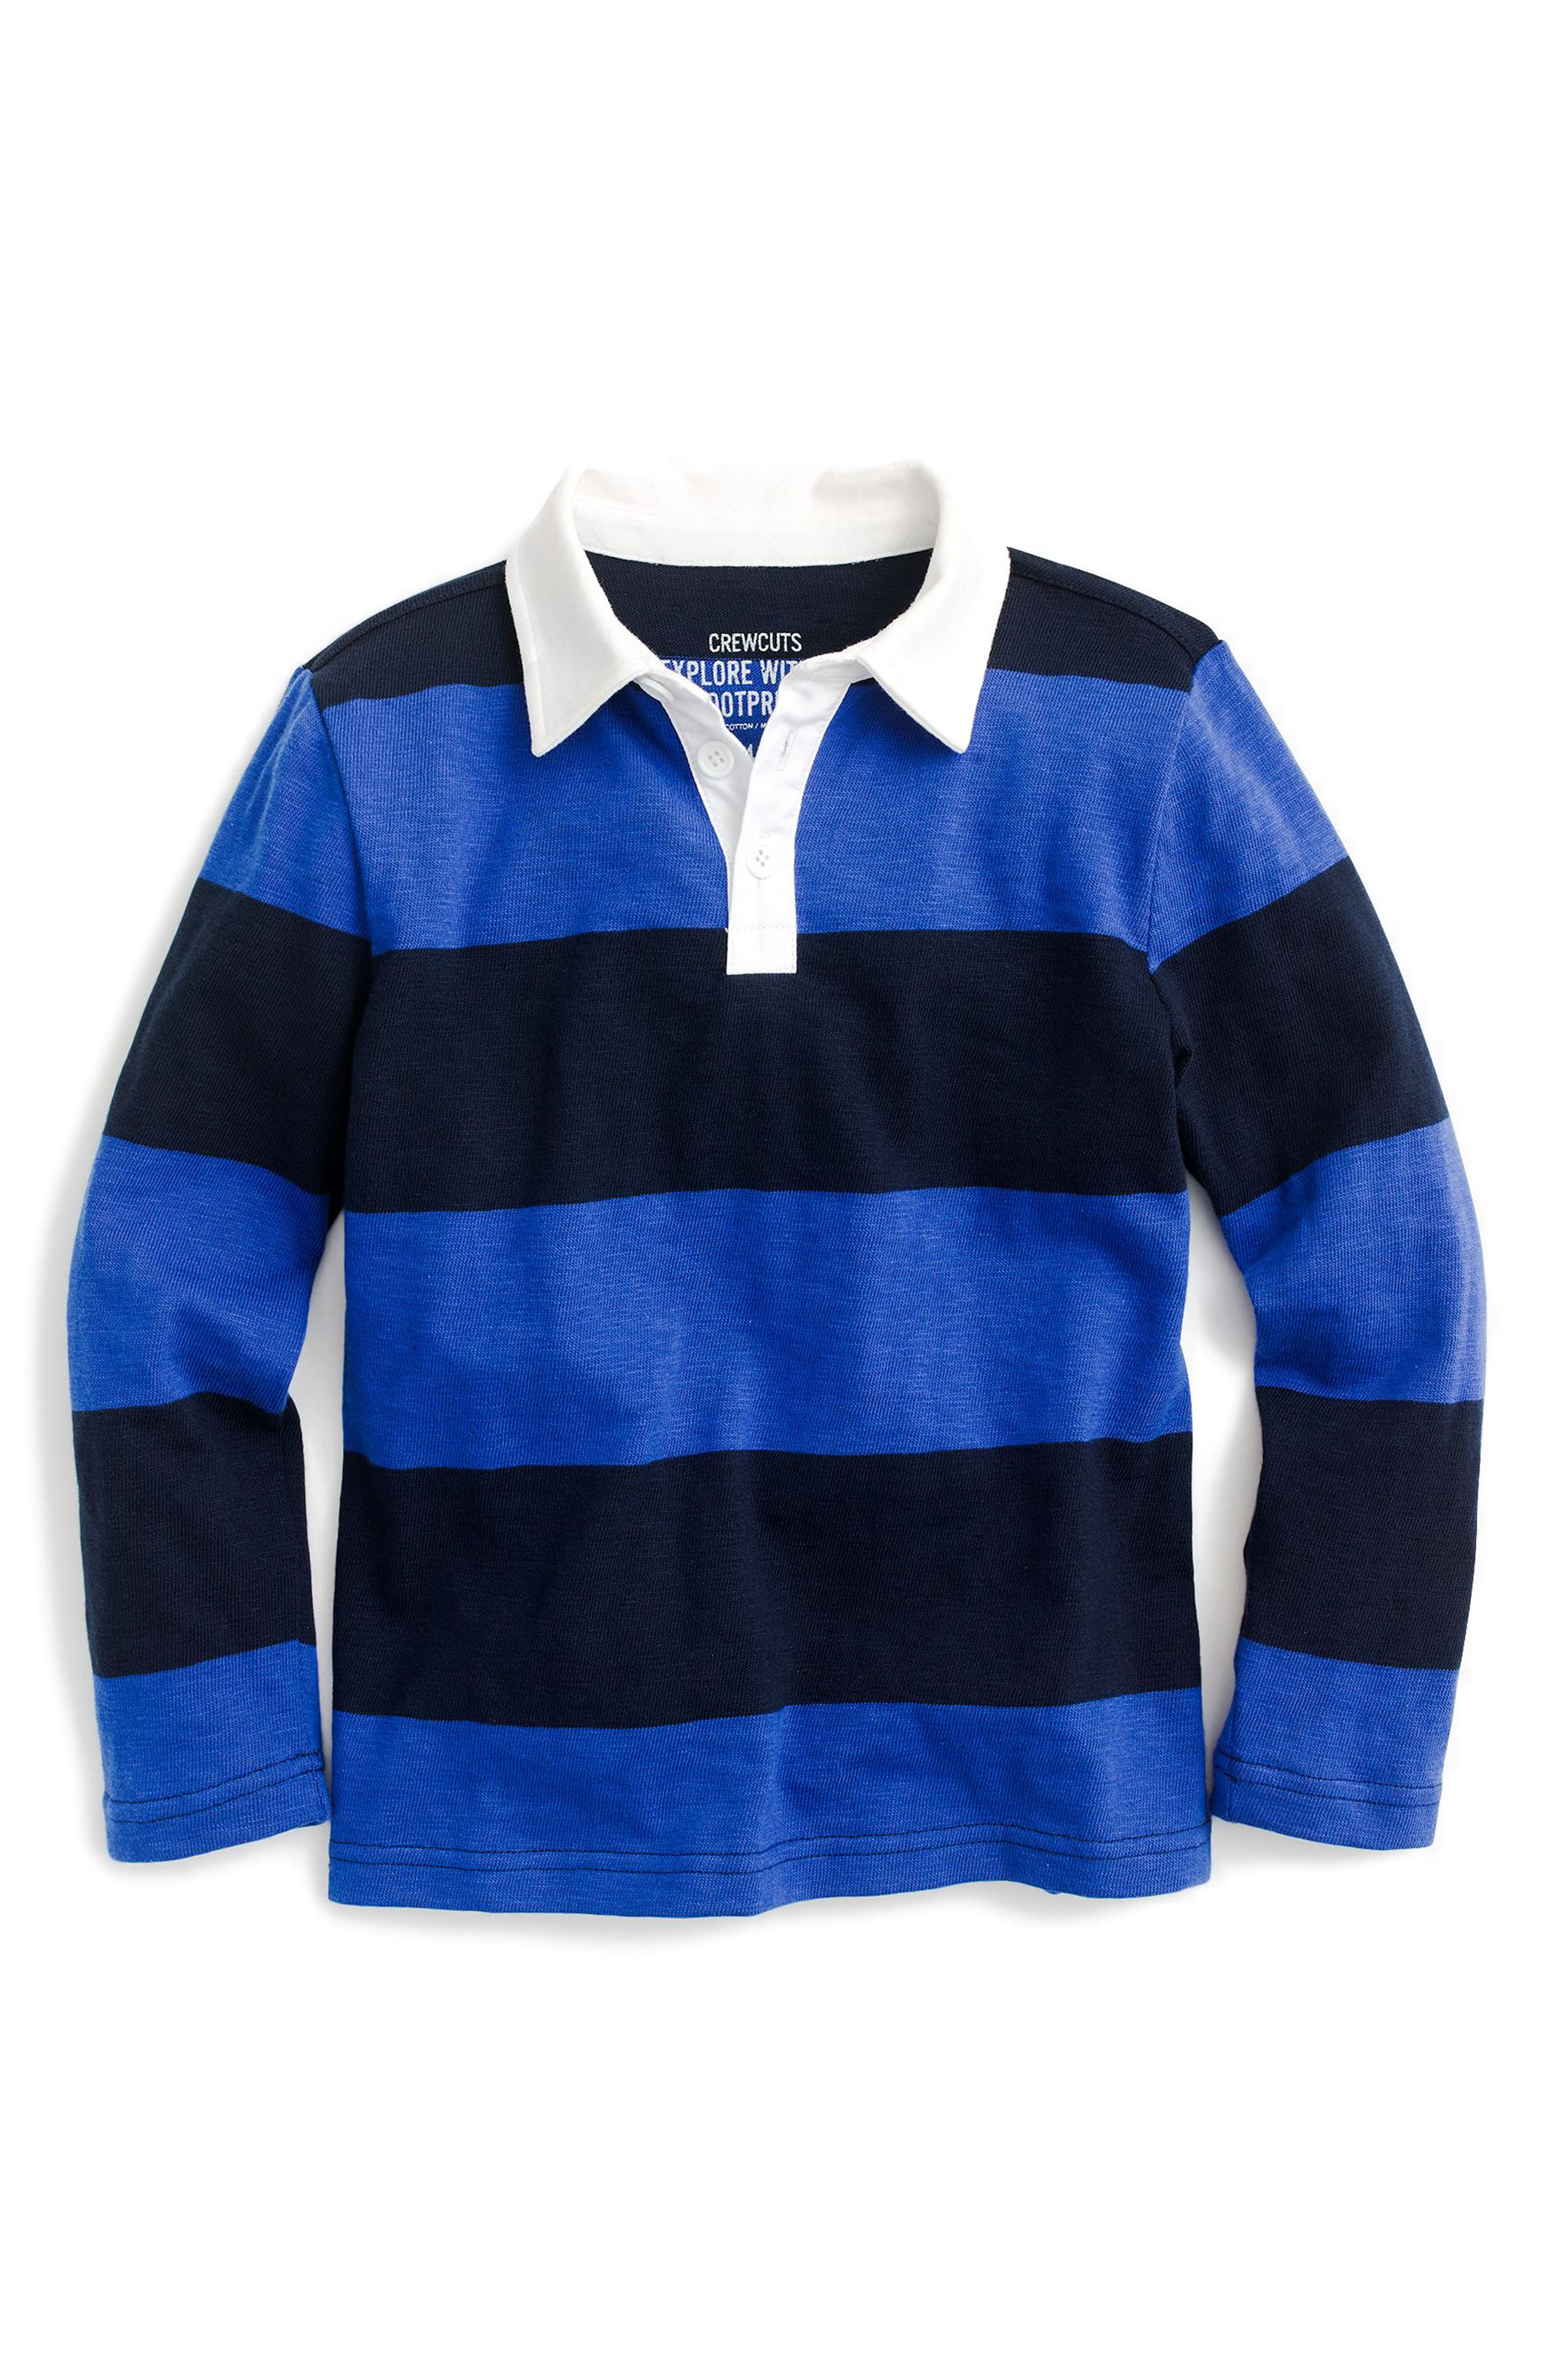 Striped Rugby Shirt,                         Main,                         color, Sapphire/ Navy